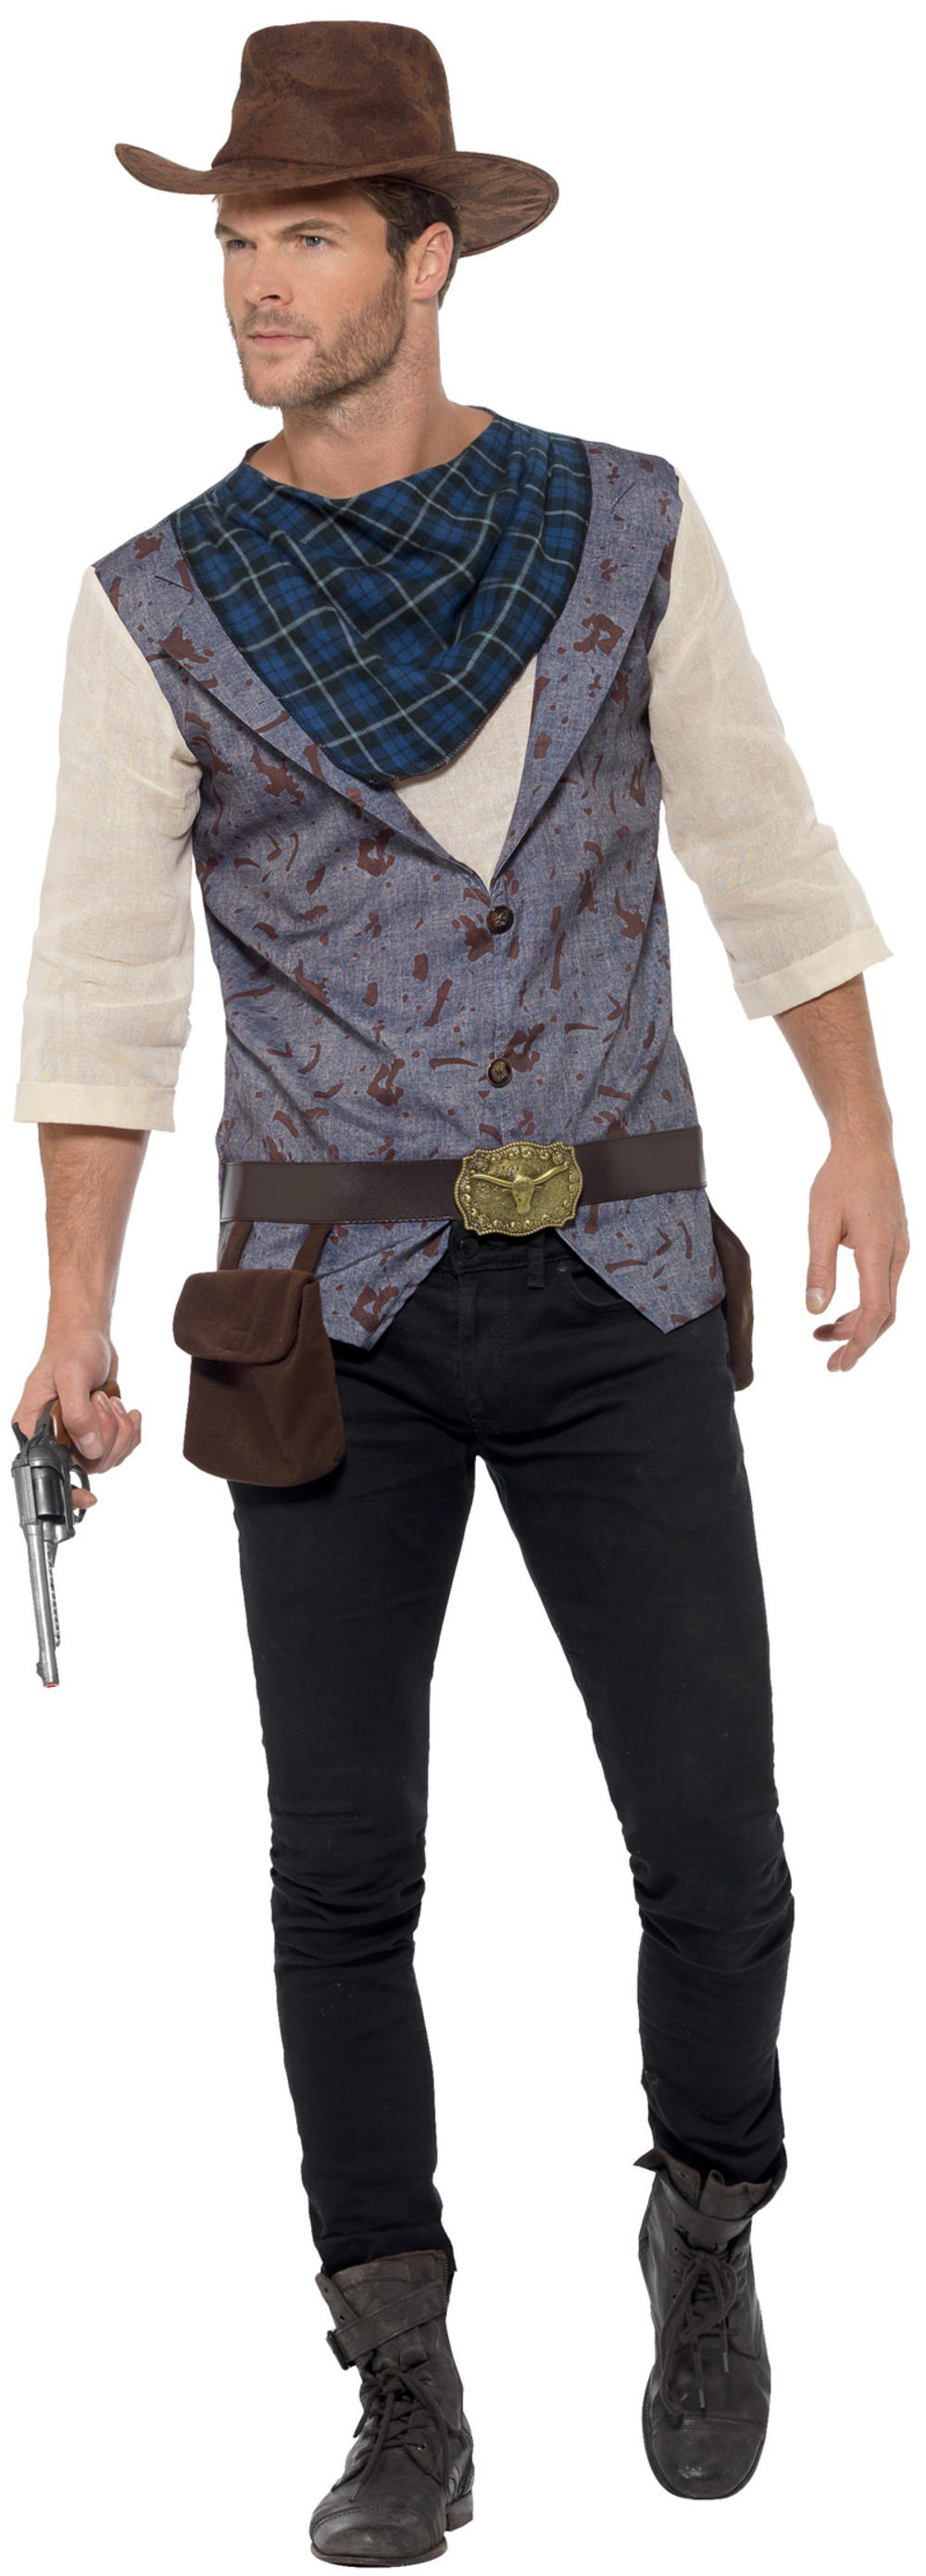 Rugged Cowboy Mens Fancy Dress Wild Western Texas Rodeo Adults Costume Outfit